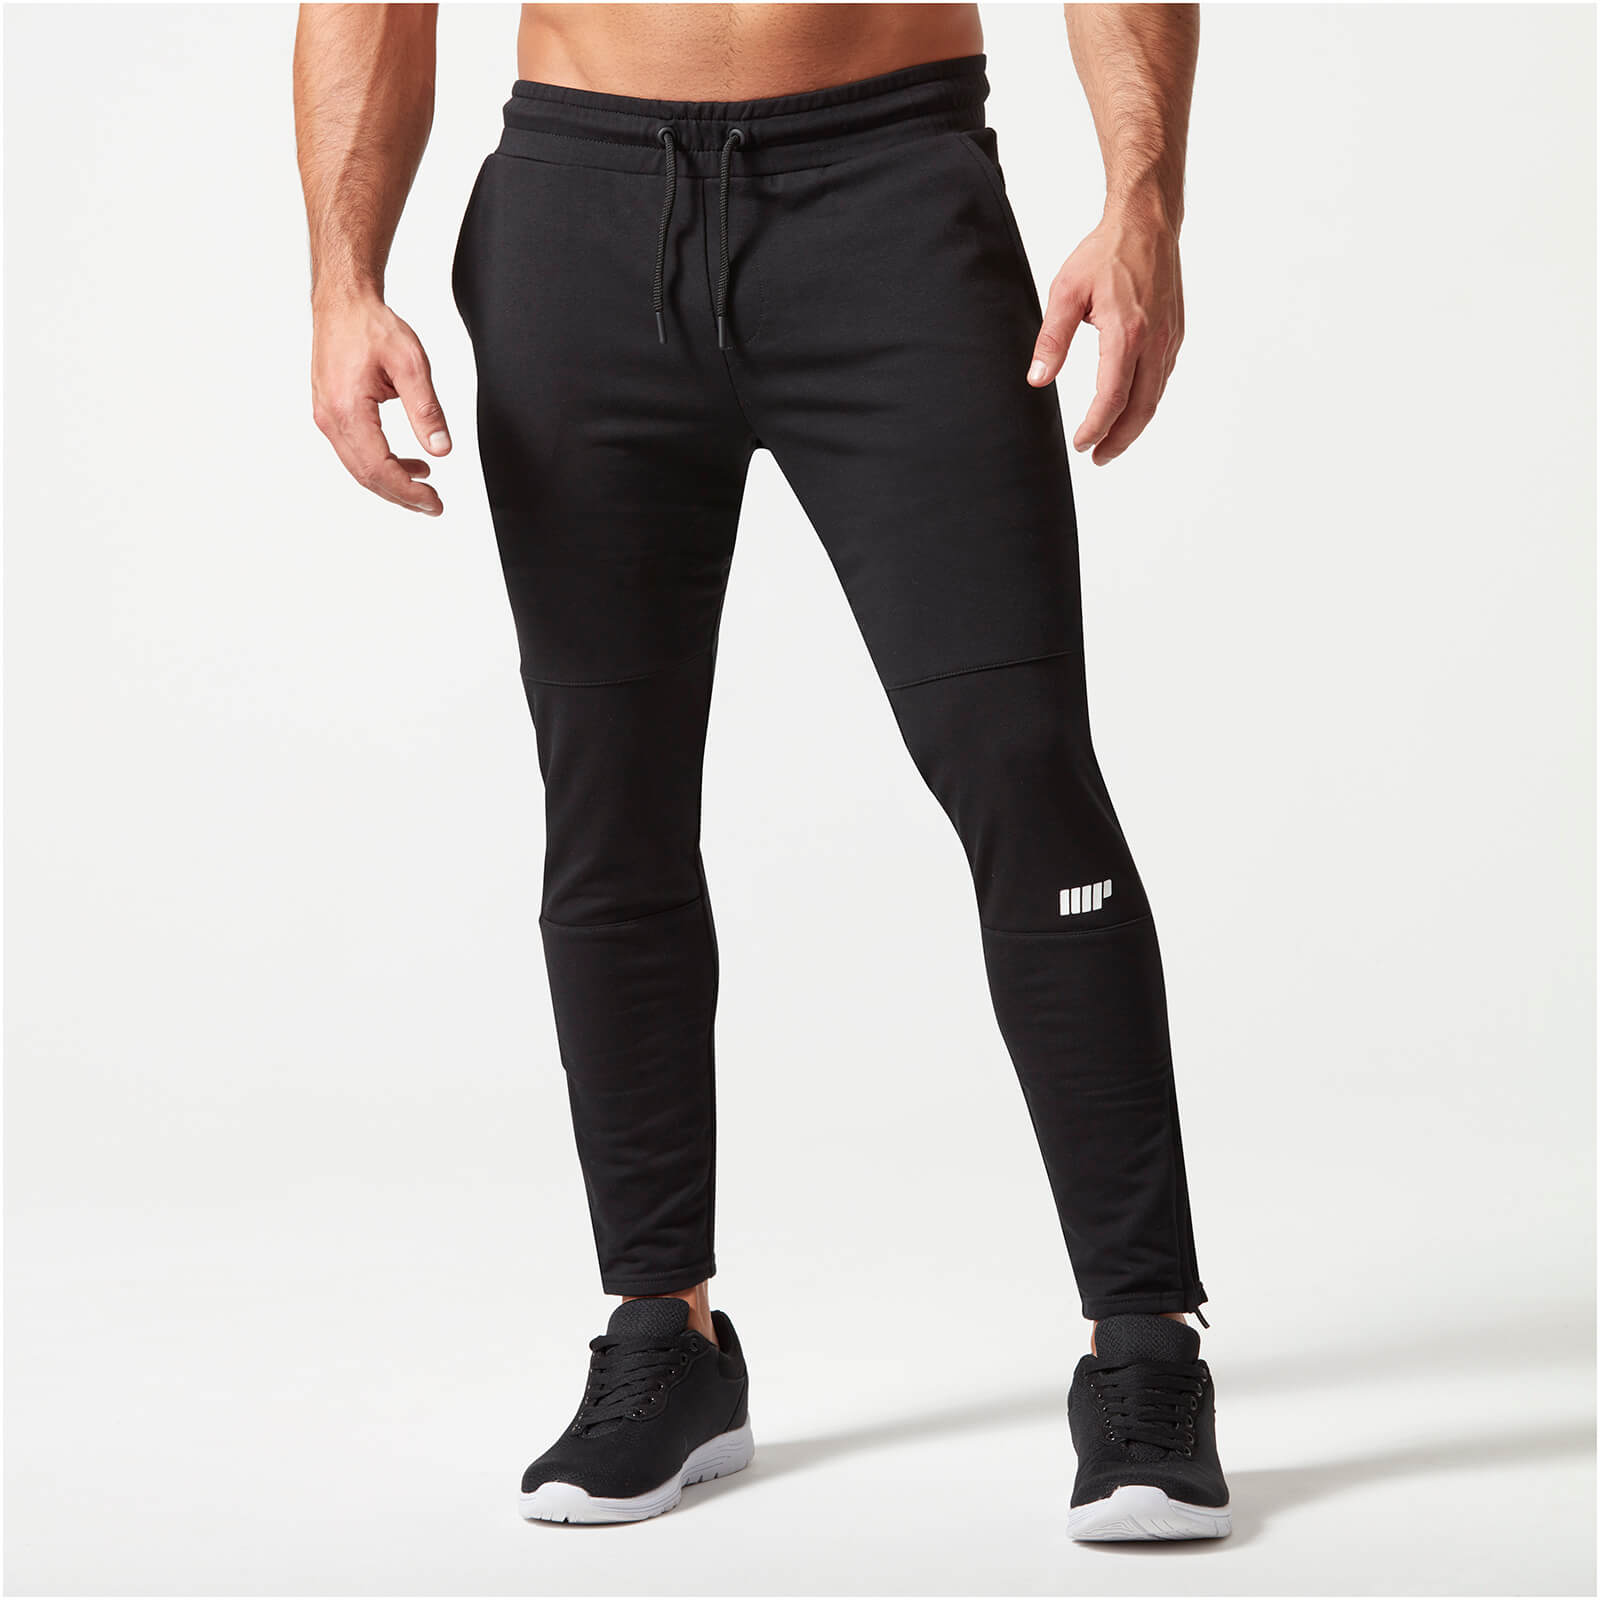 MYPROTEIN Clothing Outlet Sale – <span> As low as $3.79 </span>